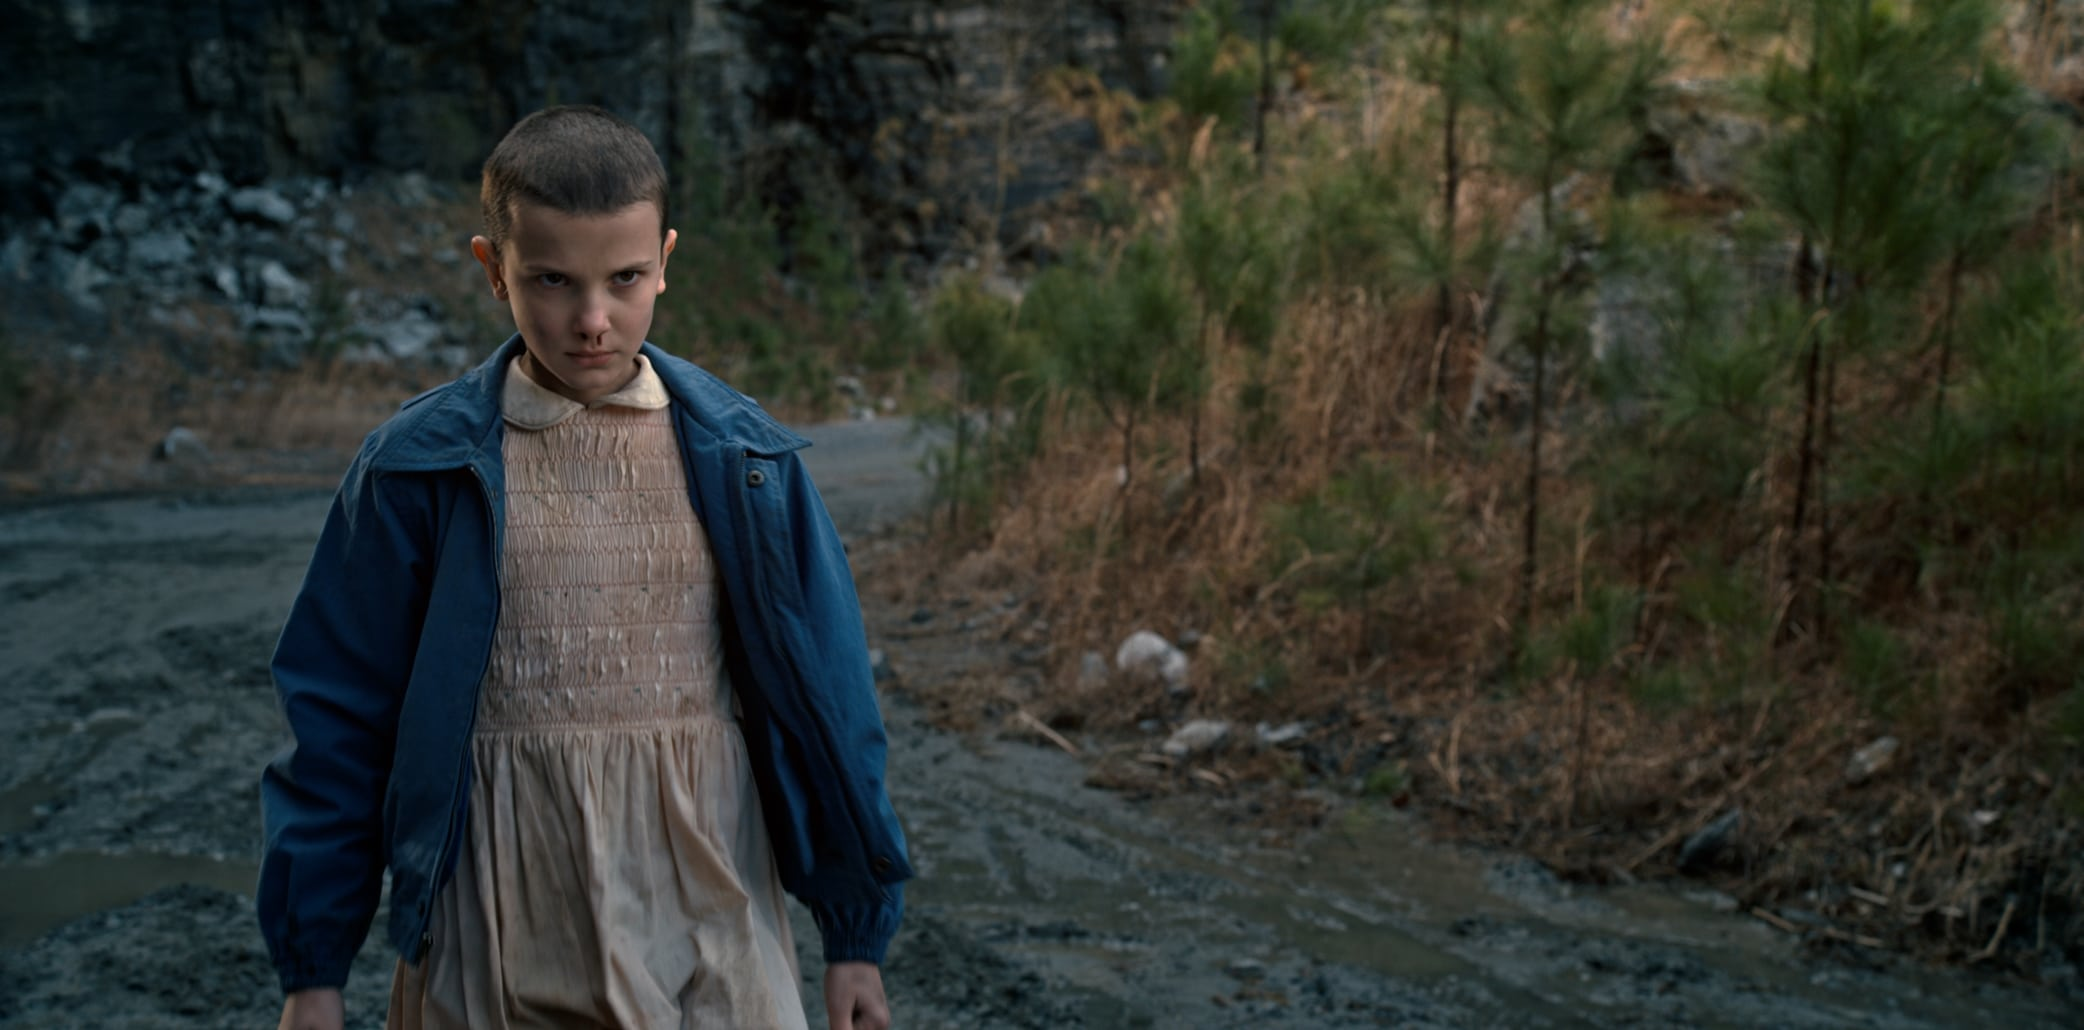 Millie Bobby Brown was 11 years old when filming the first season of Stranger Things in Atlanta, Georgia